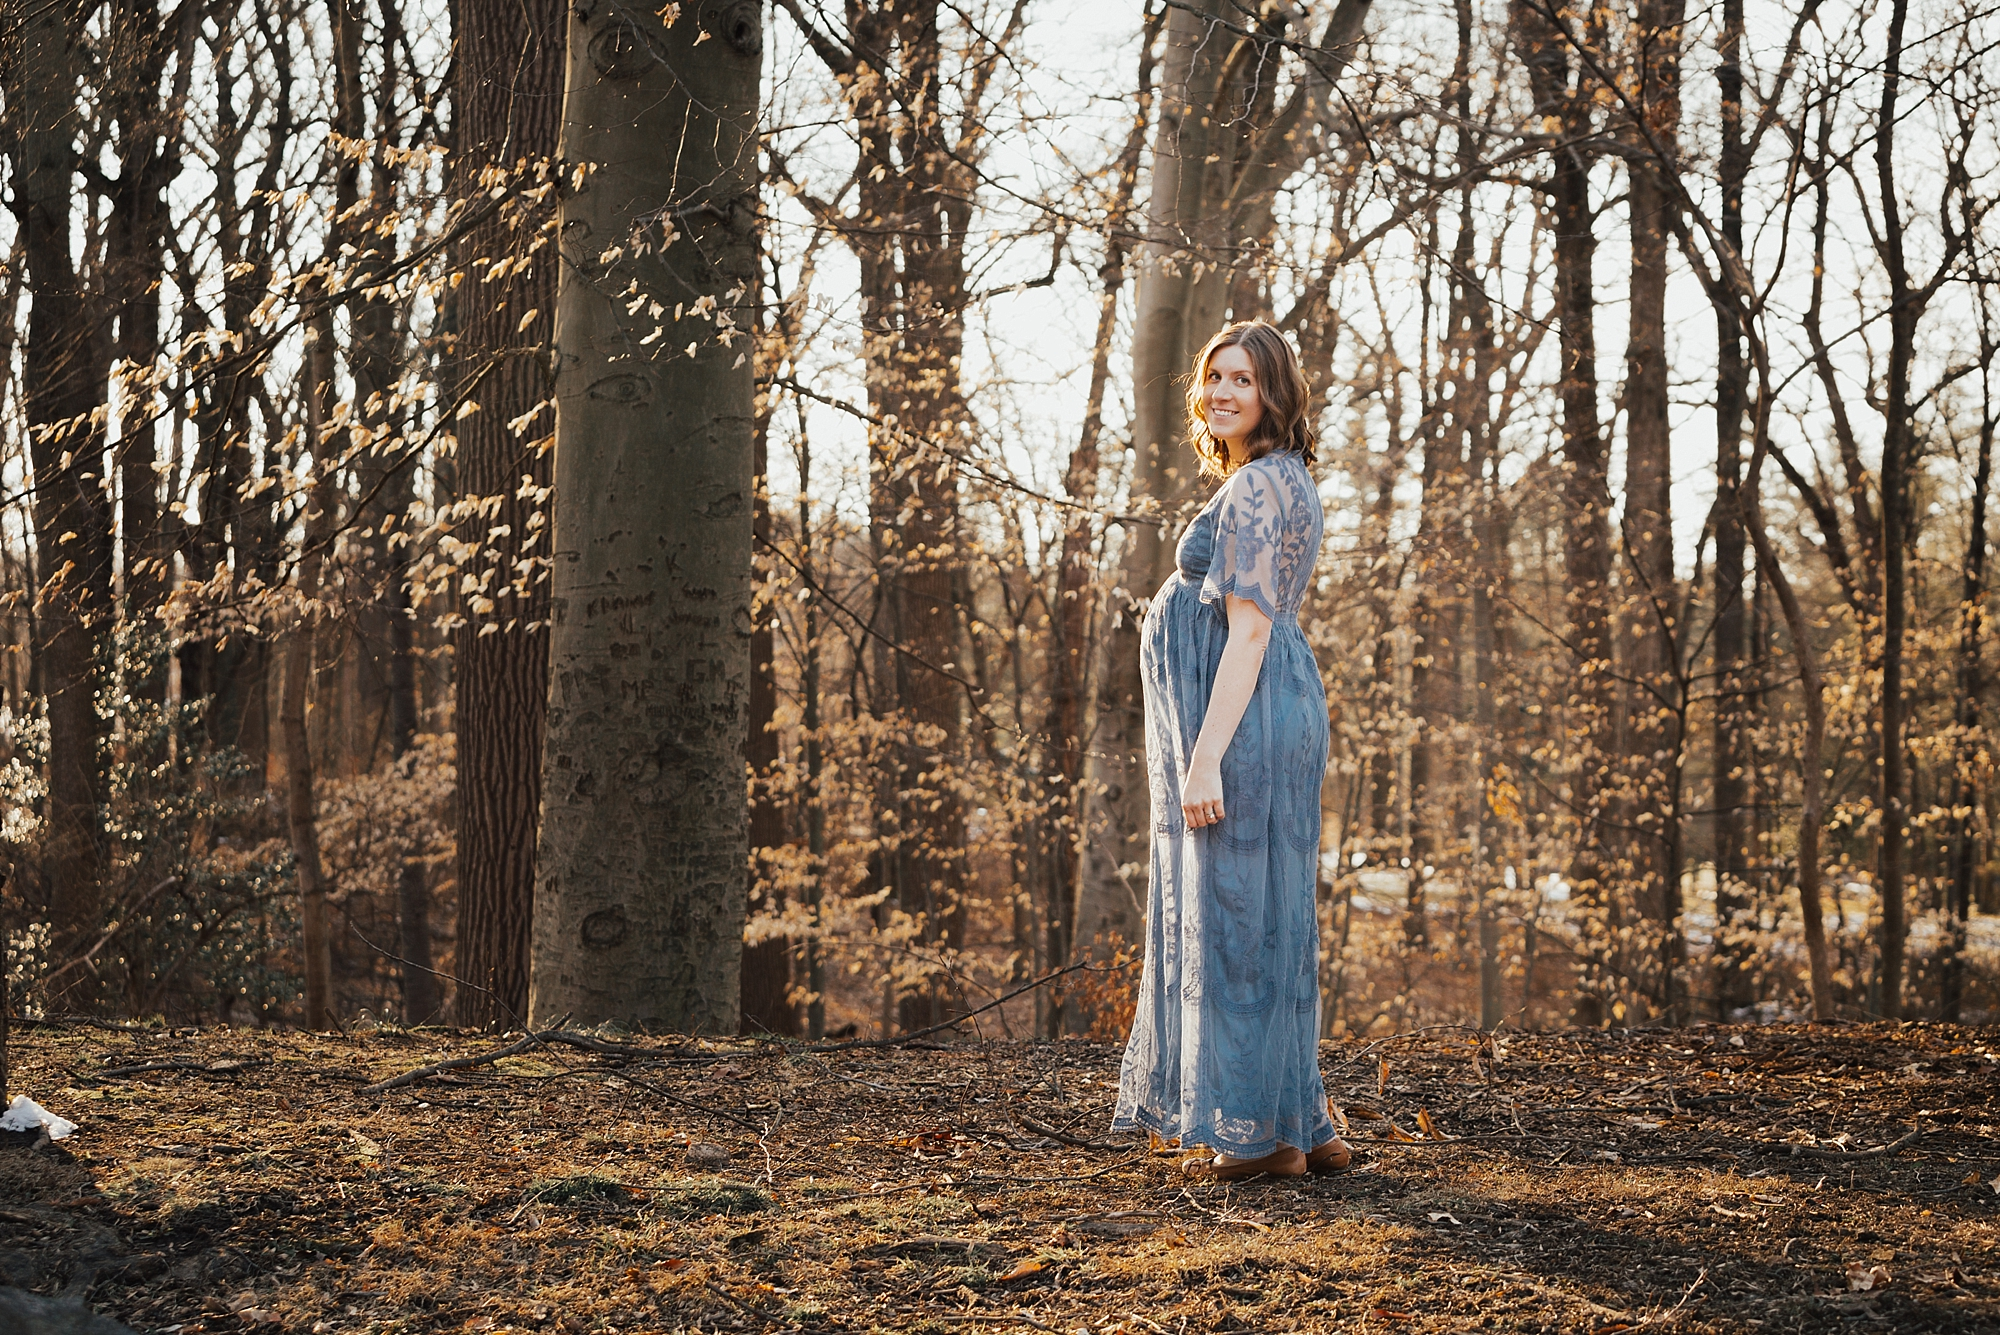 Joe_Mac_Creative_Maternity_Wedding_Engagements_Photography_Philadelphia_Valley_Forge__0038.jpg